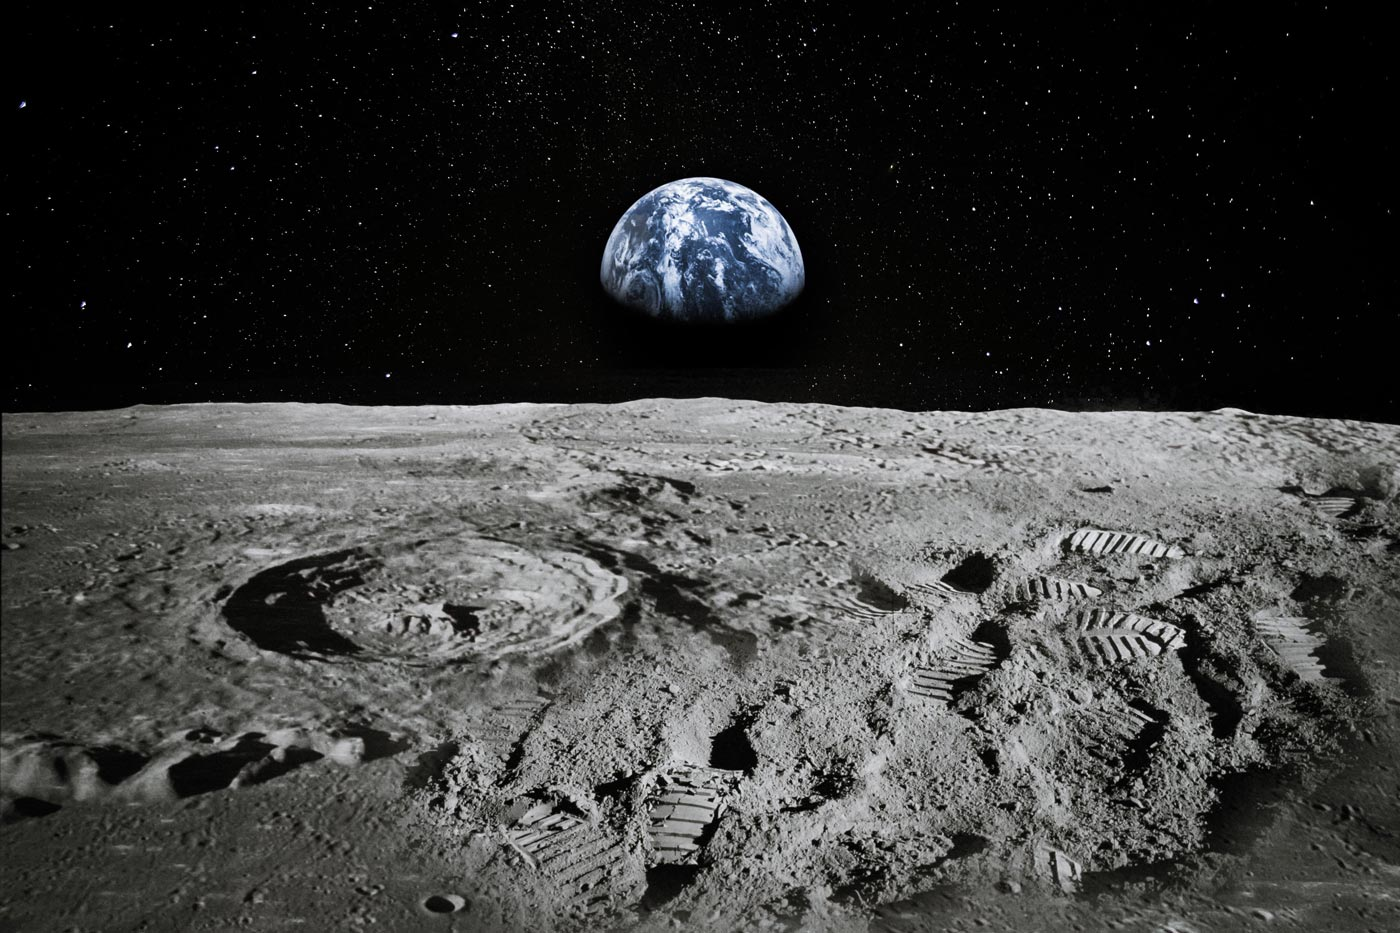 Did you know there's a Masonic Lodge on the Moon?